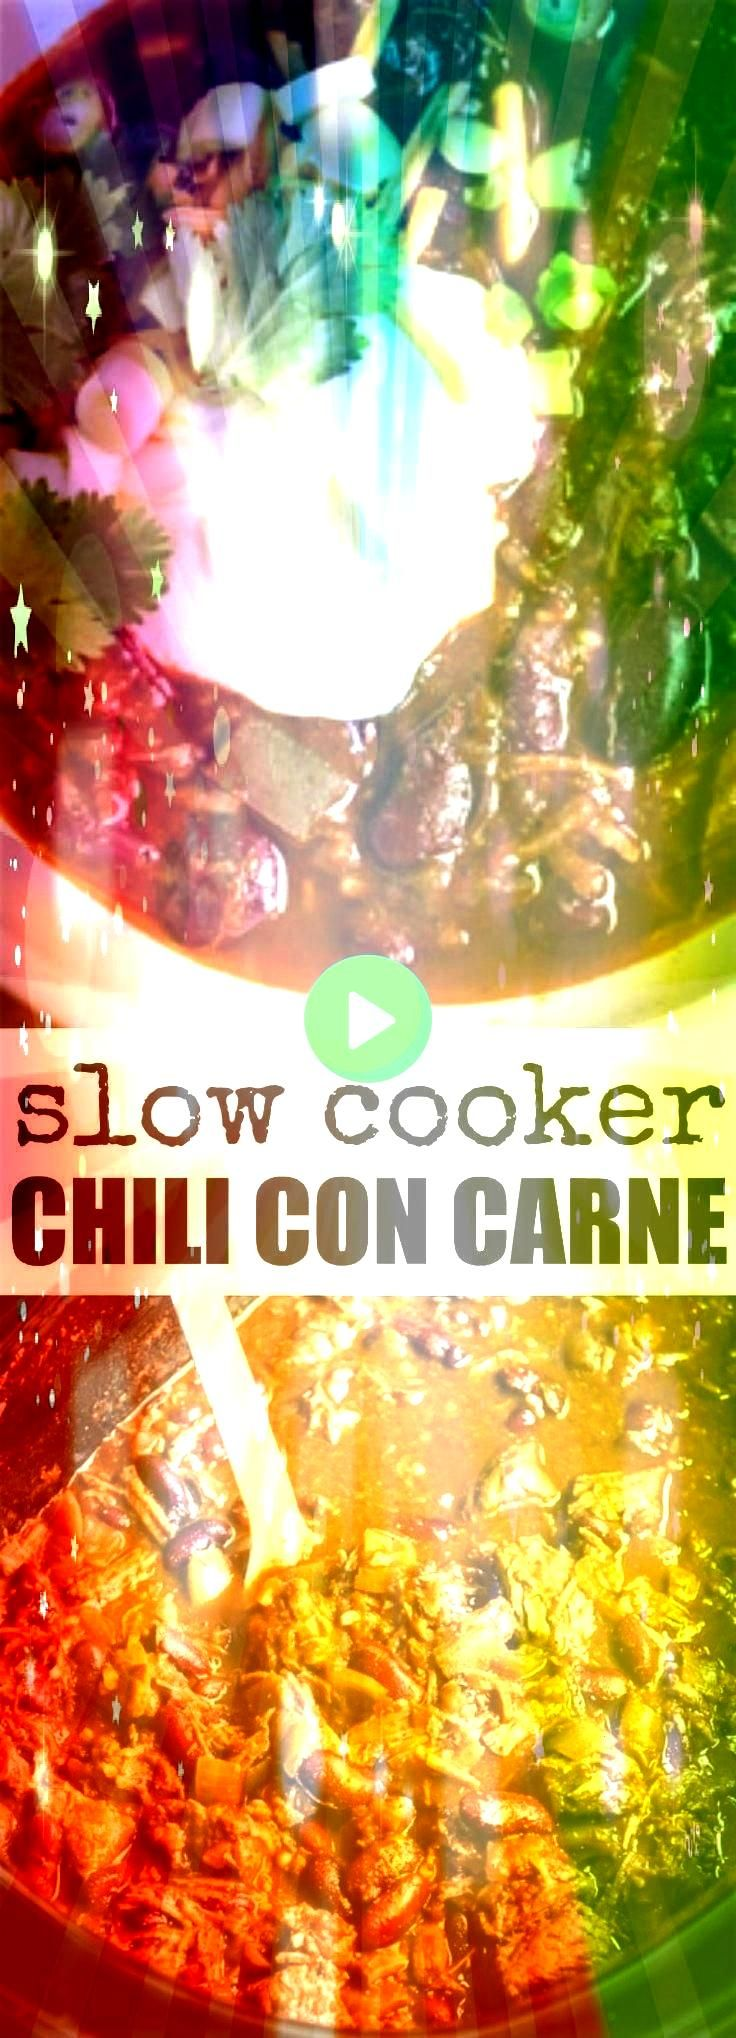 easy recipe for Slow Cooker Chili Con Carne Find all my tips and tricks for adding the most flavor to your chili every step of the wayA delicious easy recipe for Slow Coo...